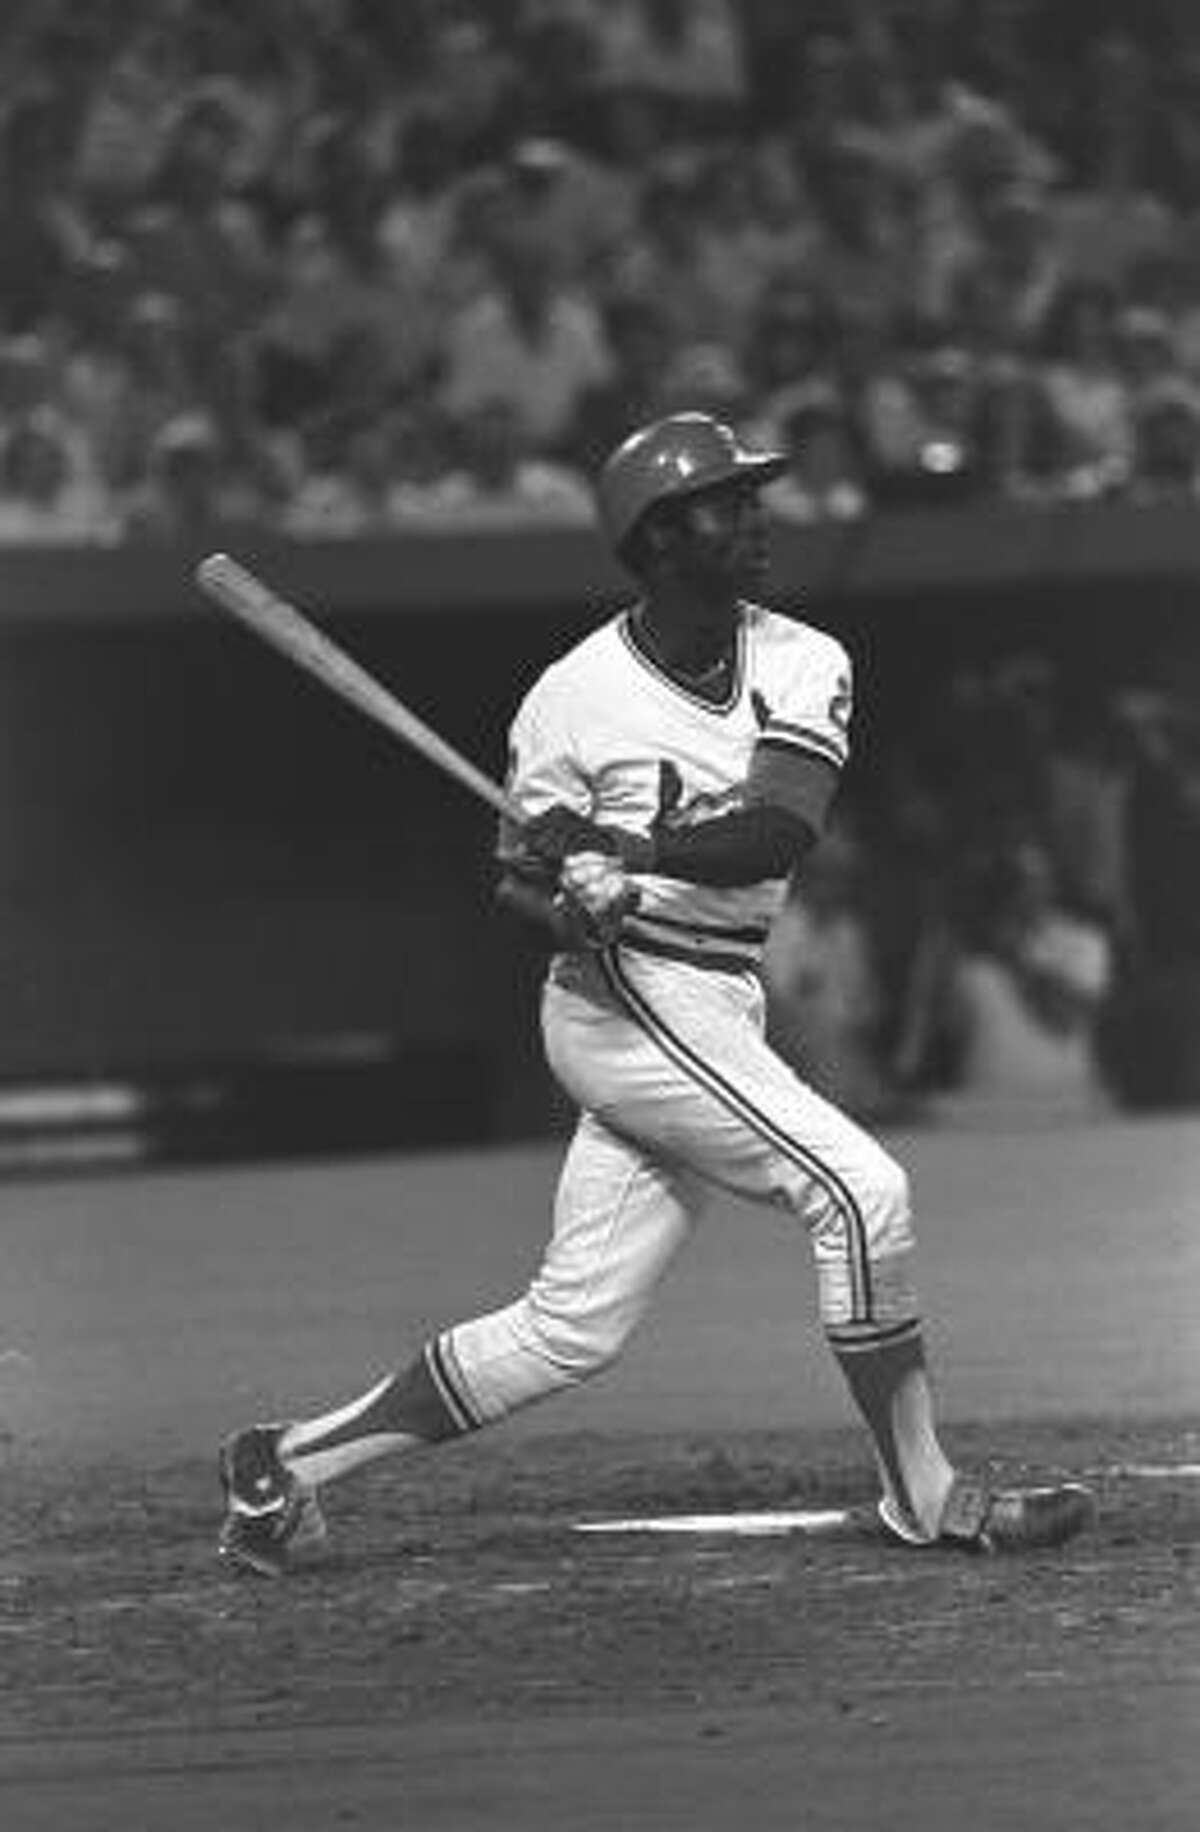 Lou Brock: 3,023 hits Career average: .293 The St. Louis Cardinals great became the 13th member of the 3,000 hit club on August 13, 1979. Brock is also second all-time in stolen bases with 938, a record he held until Rickey Henderson broke it in 1991.